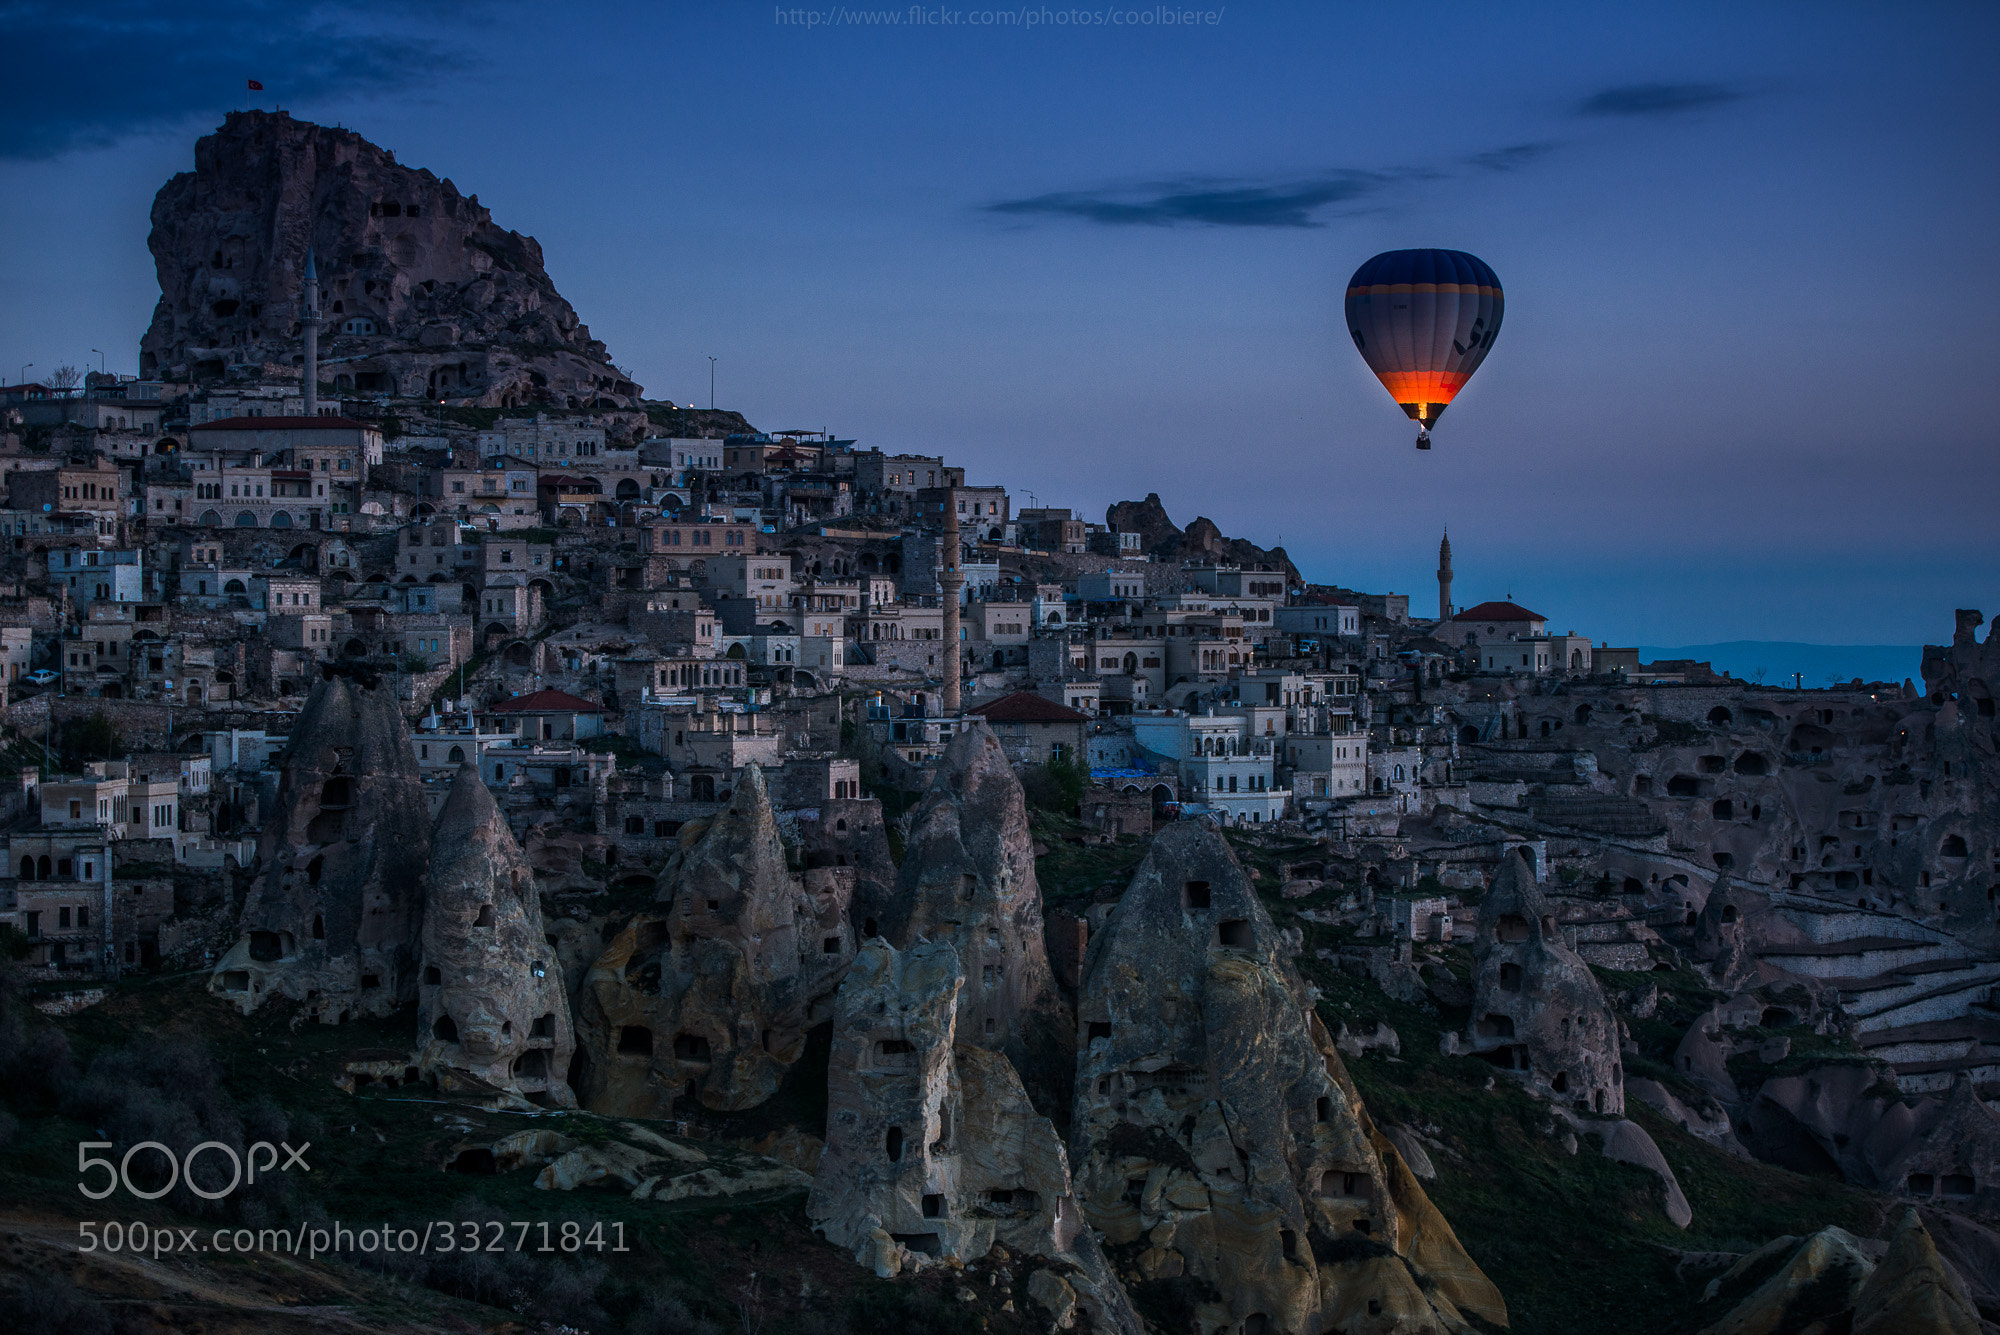 Photograph First balloon by Coolbiere. A. on 500px